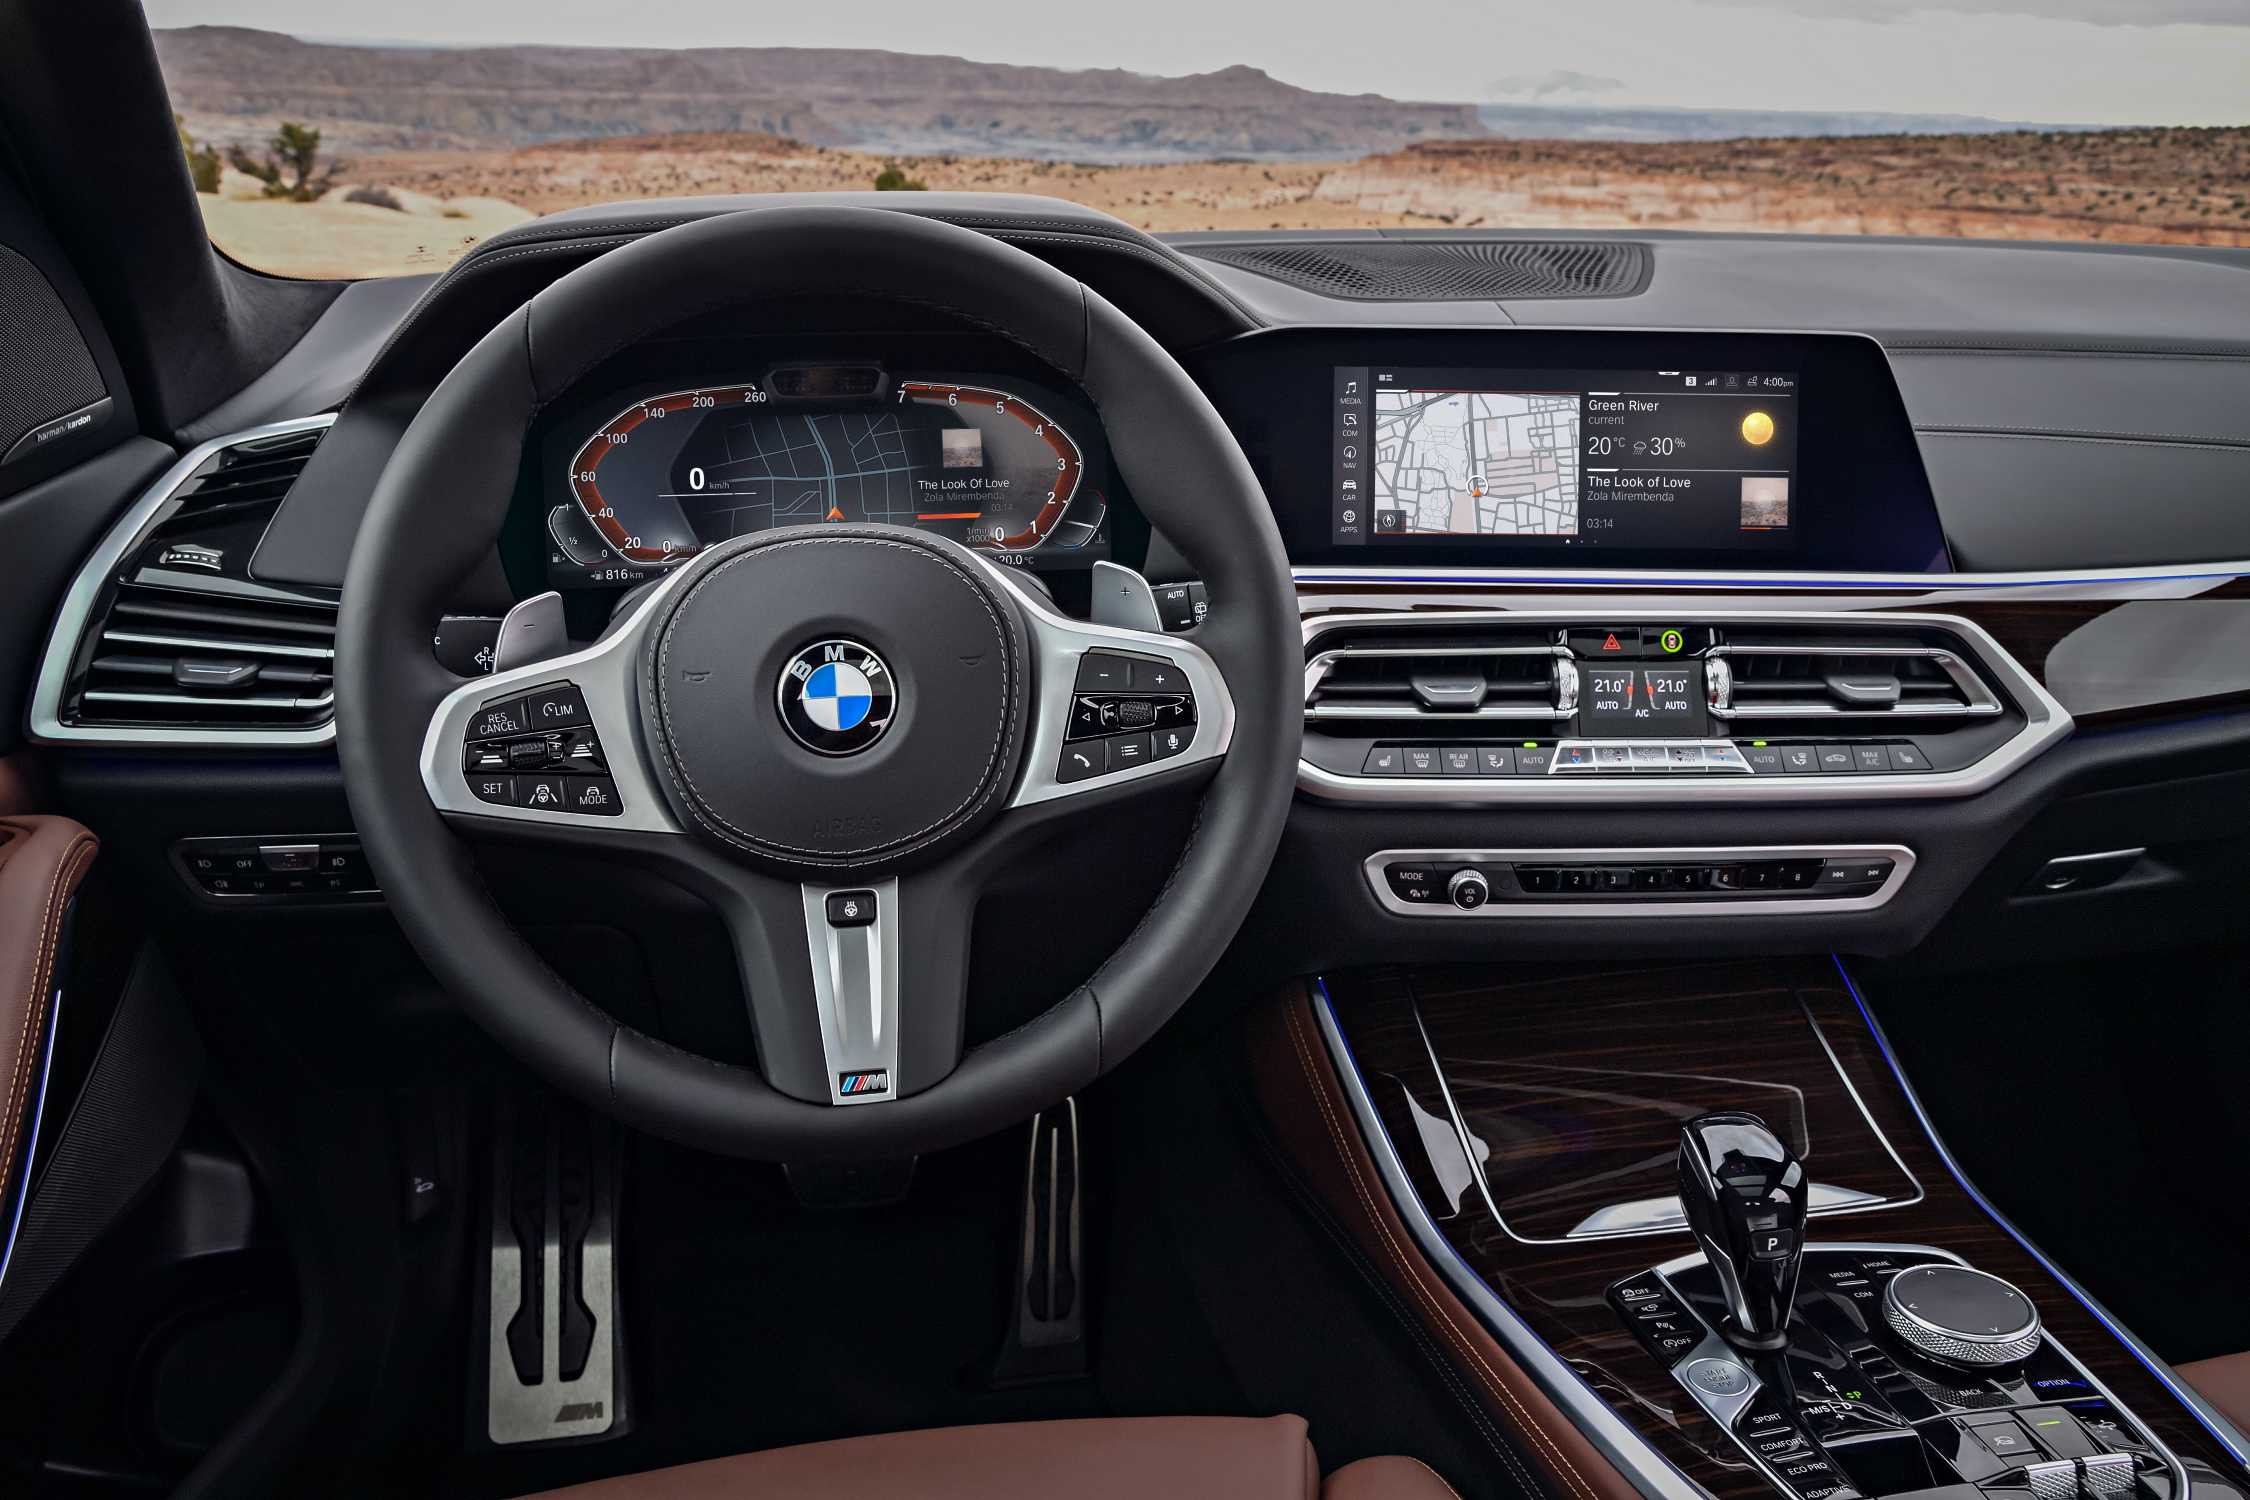 New Bmw Cockpit Is Digital Intelligent Perfectly Tuned